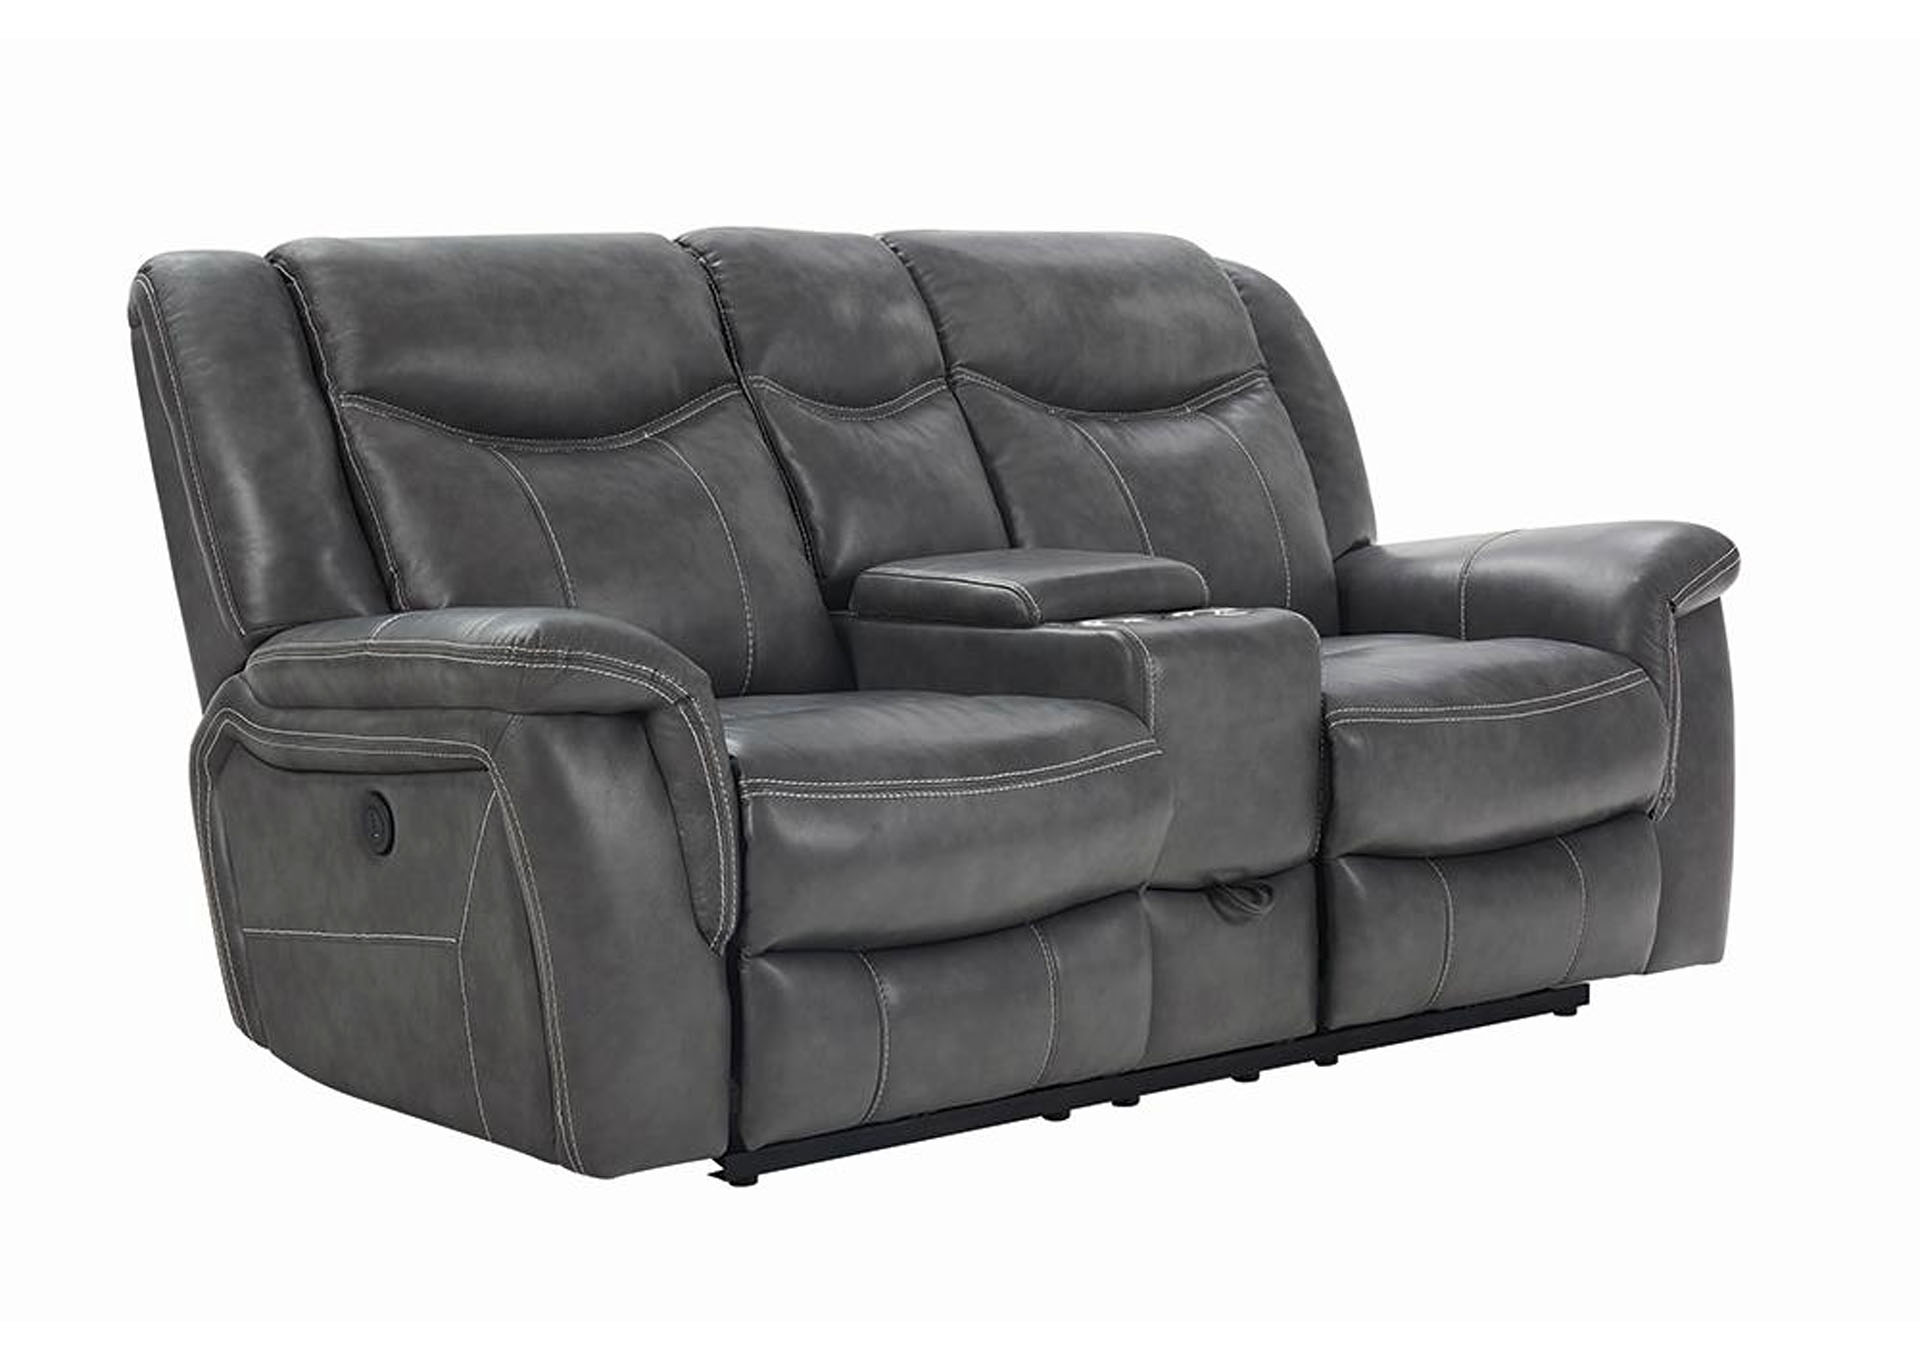 Tundora Conrad Transitional Grey Motion Loveseat,Coaster Furniture